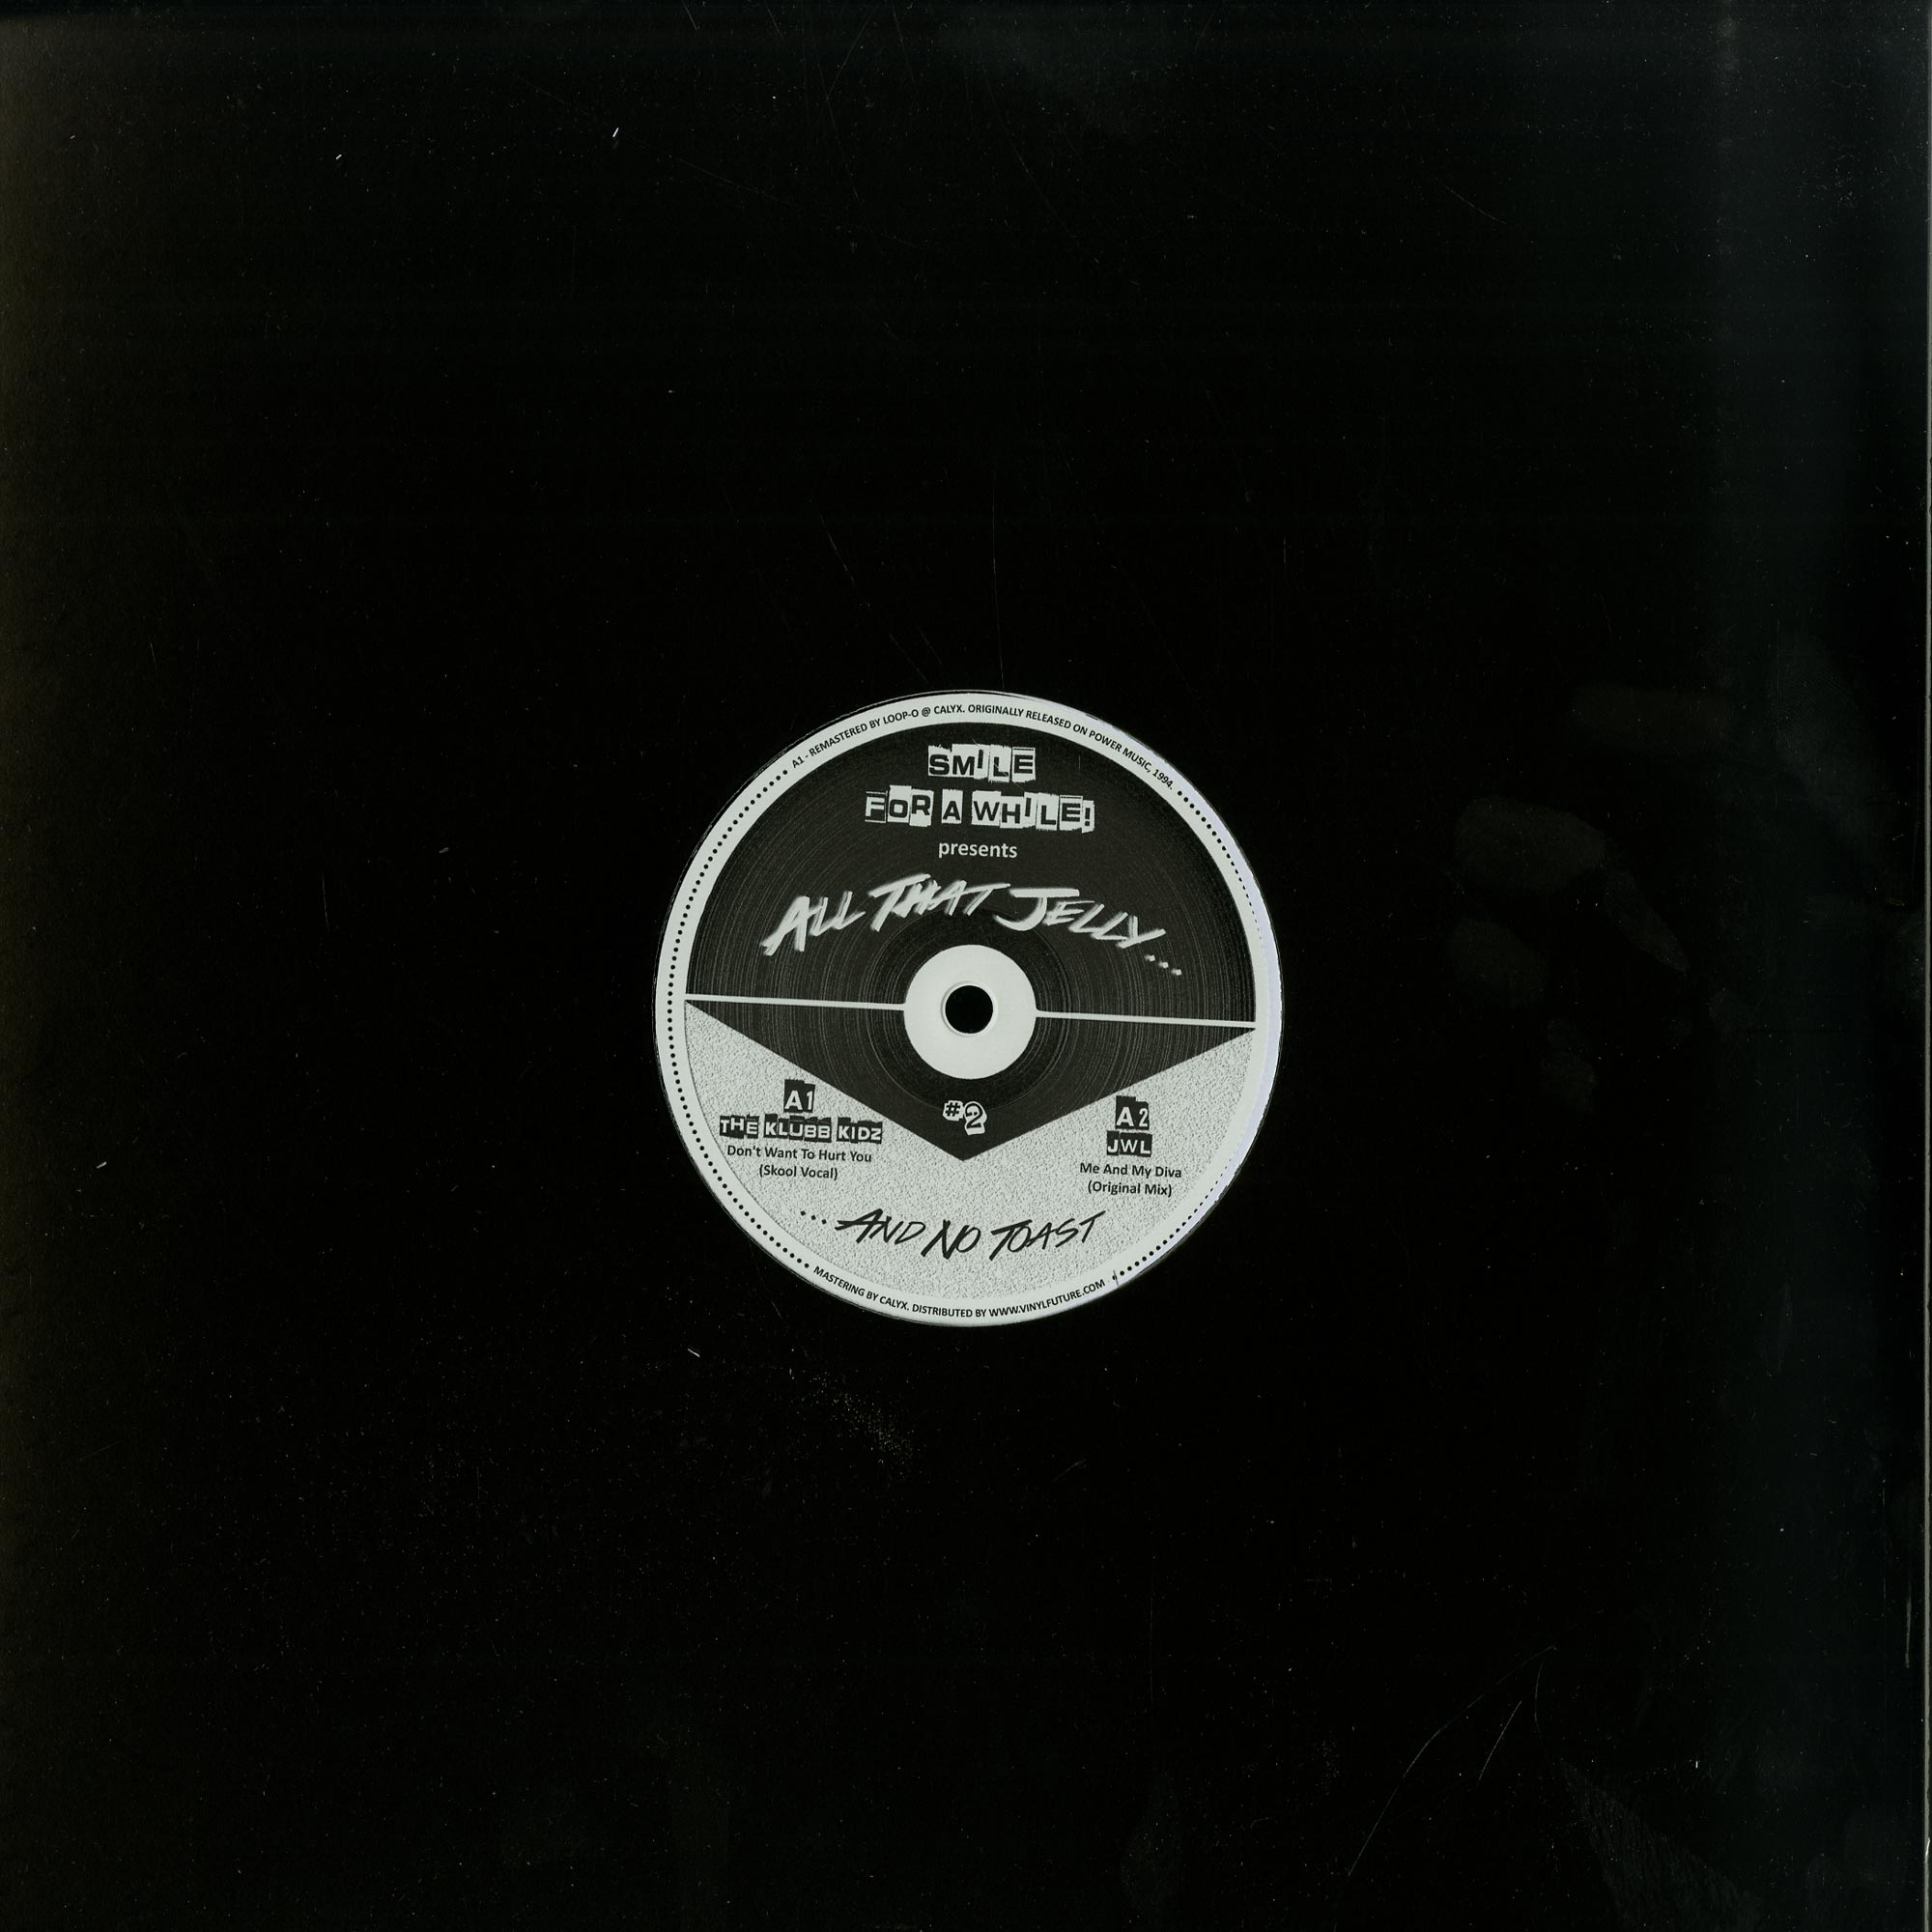 Jwl / Dj With Soul / The Klubb Kidz / Jordan Fields - ALL THAT JELLY VOL 2